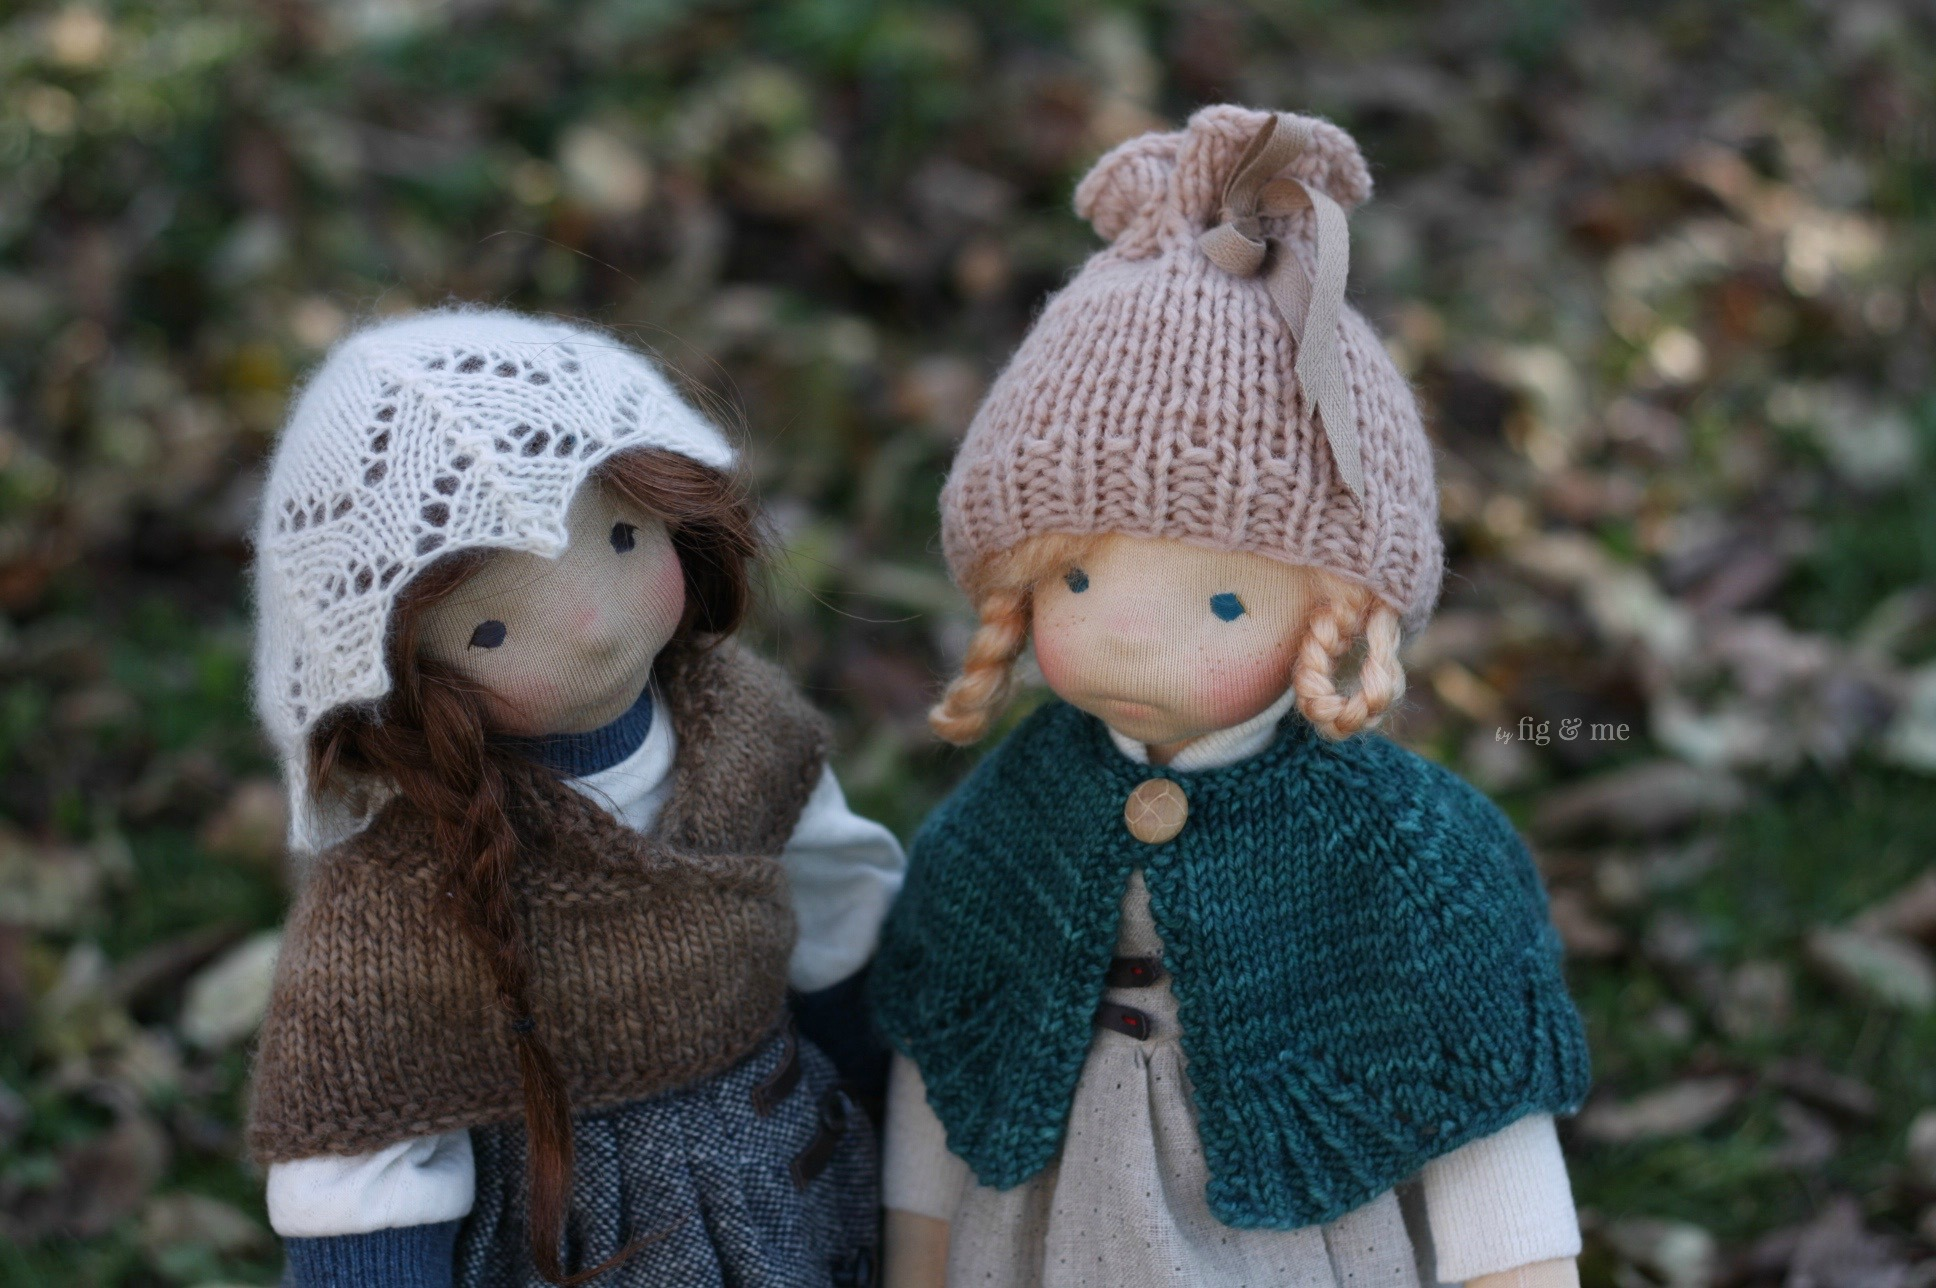 Skye and Iona, two natural fiber art dolls inspired by Scotland, via Fig and me.